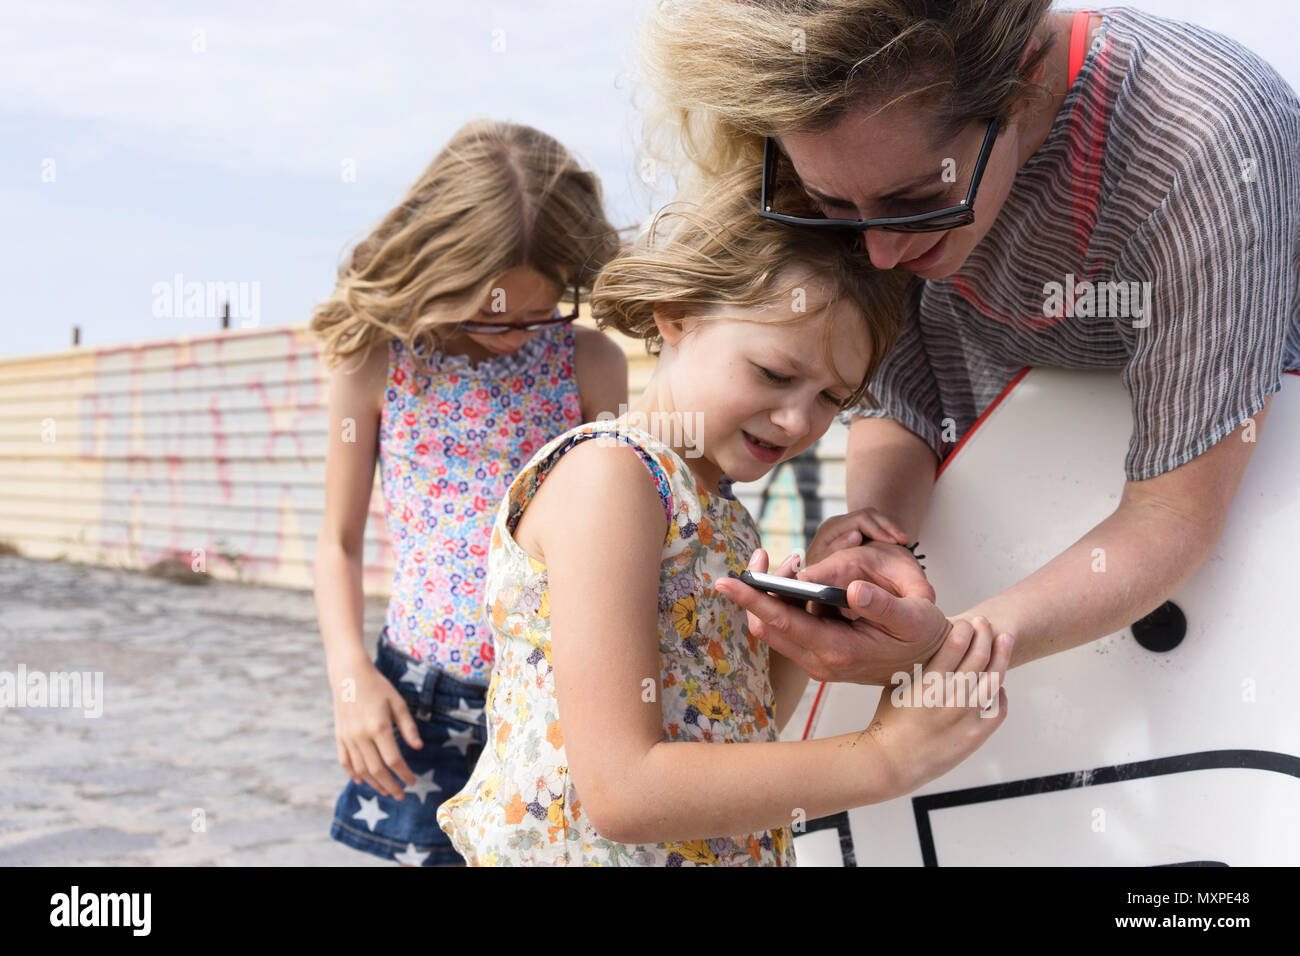 mother showing her daughter something on her mobile phone with the other daughter in the background - Stock Image